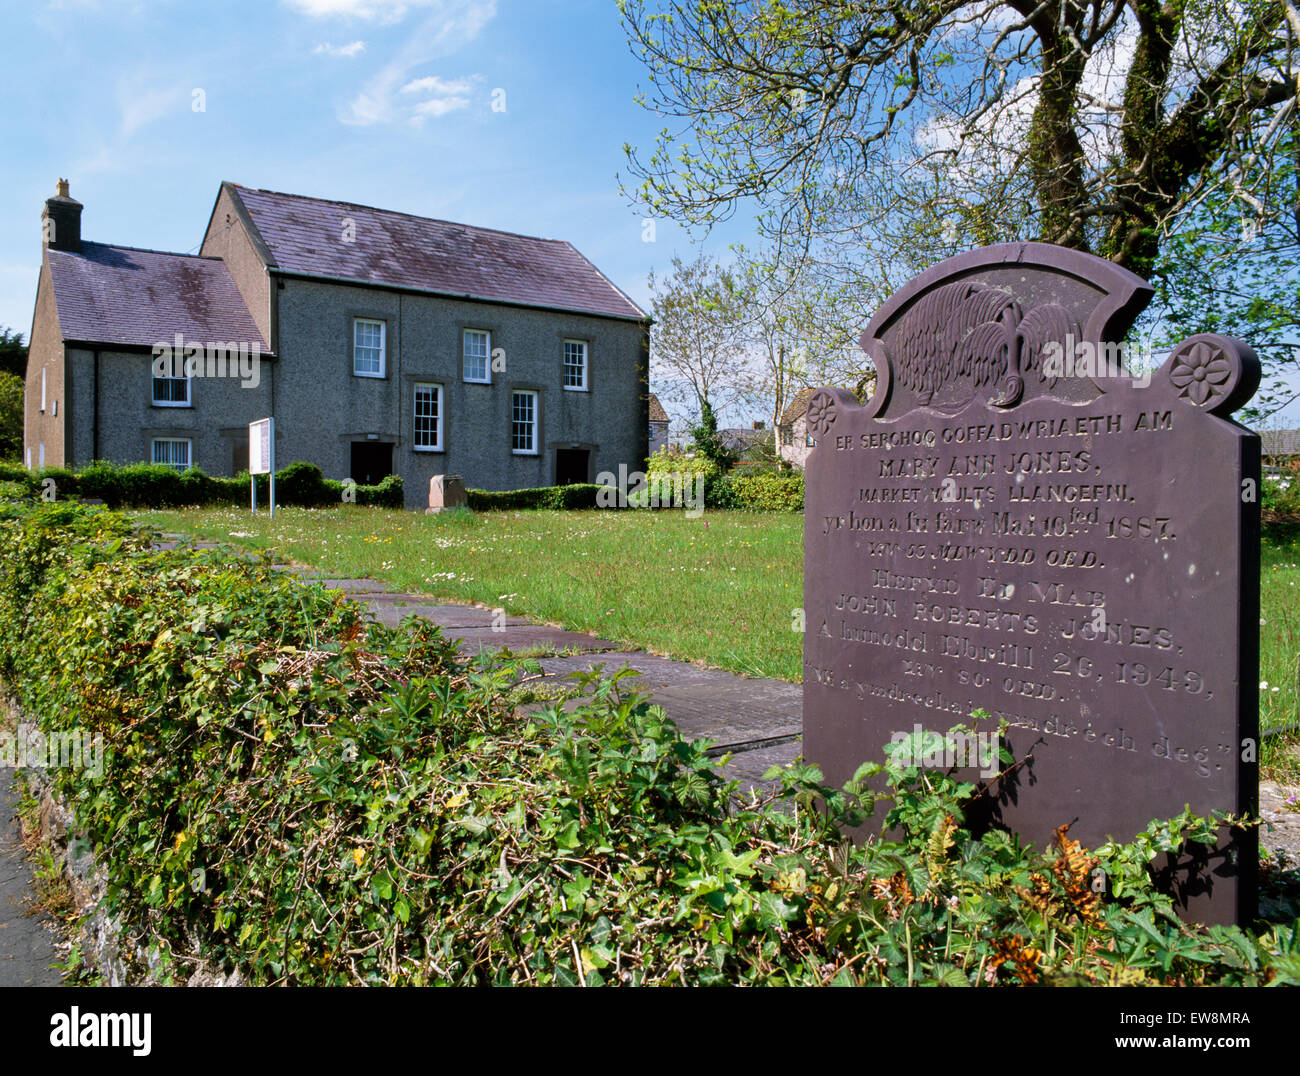 Capel Cildwrn, Llangefni, the first Baptist chapel in Anglesey, 1750, enlarged 1781, 1814 & 1846: preacher Christmas - Stock Image